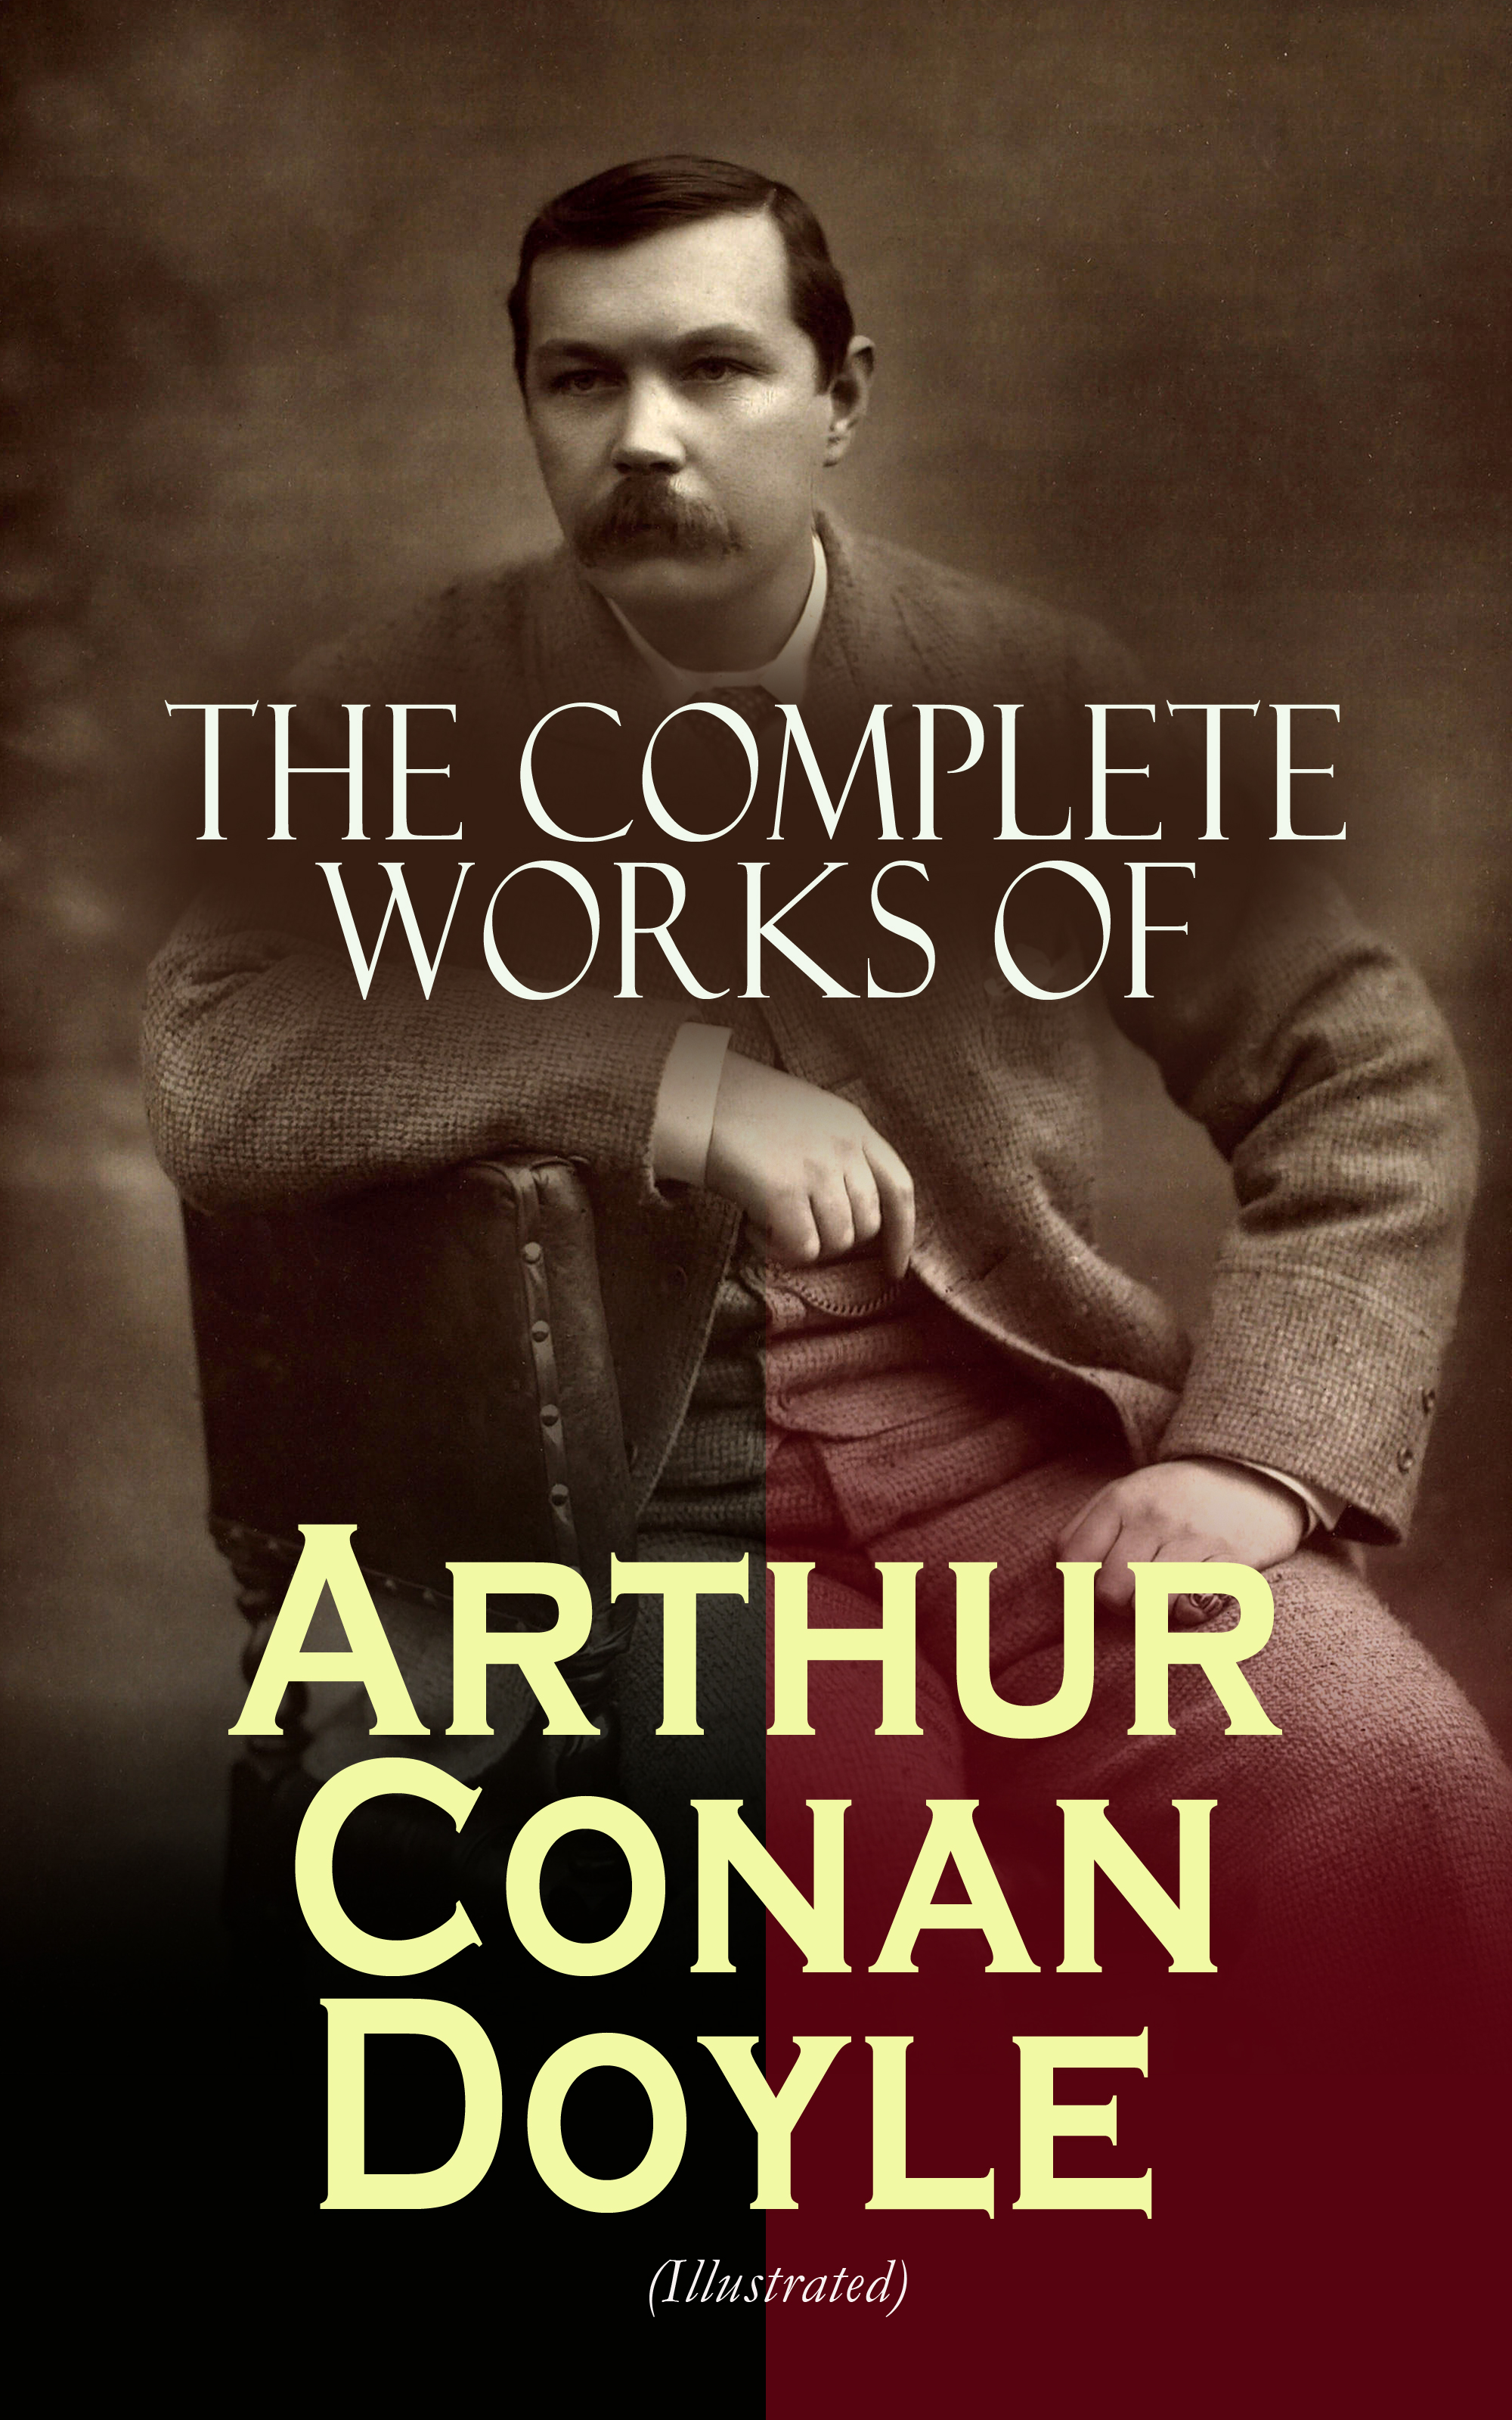 Arthur Conan Doyle The Complete Works of Arthur Conan Doyle (Illustrated) цена и фото